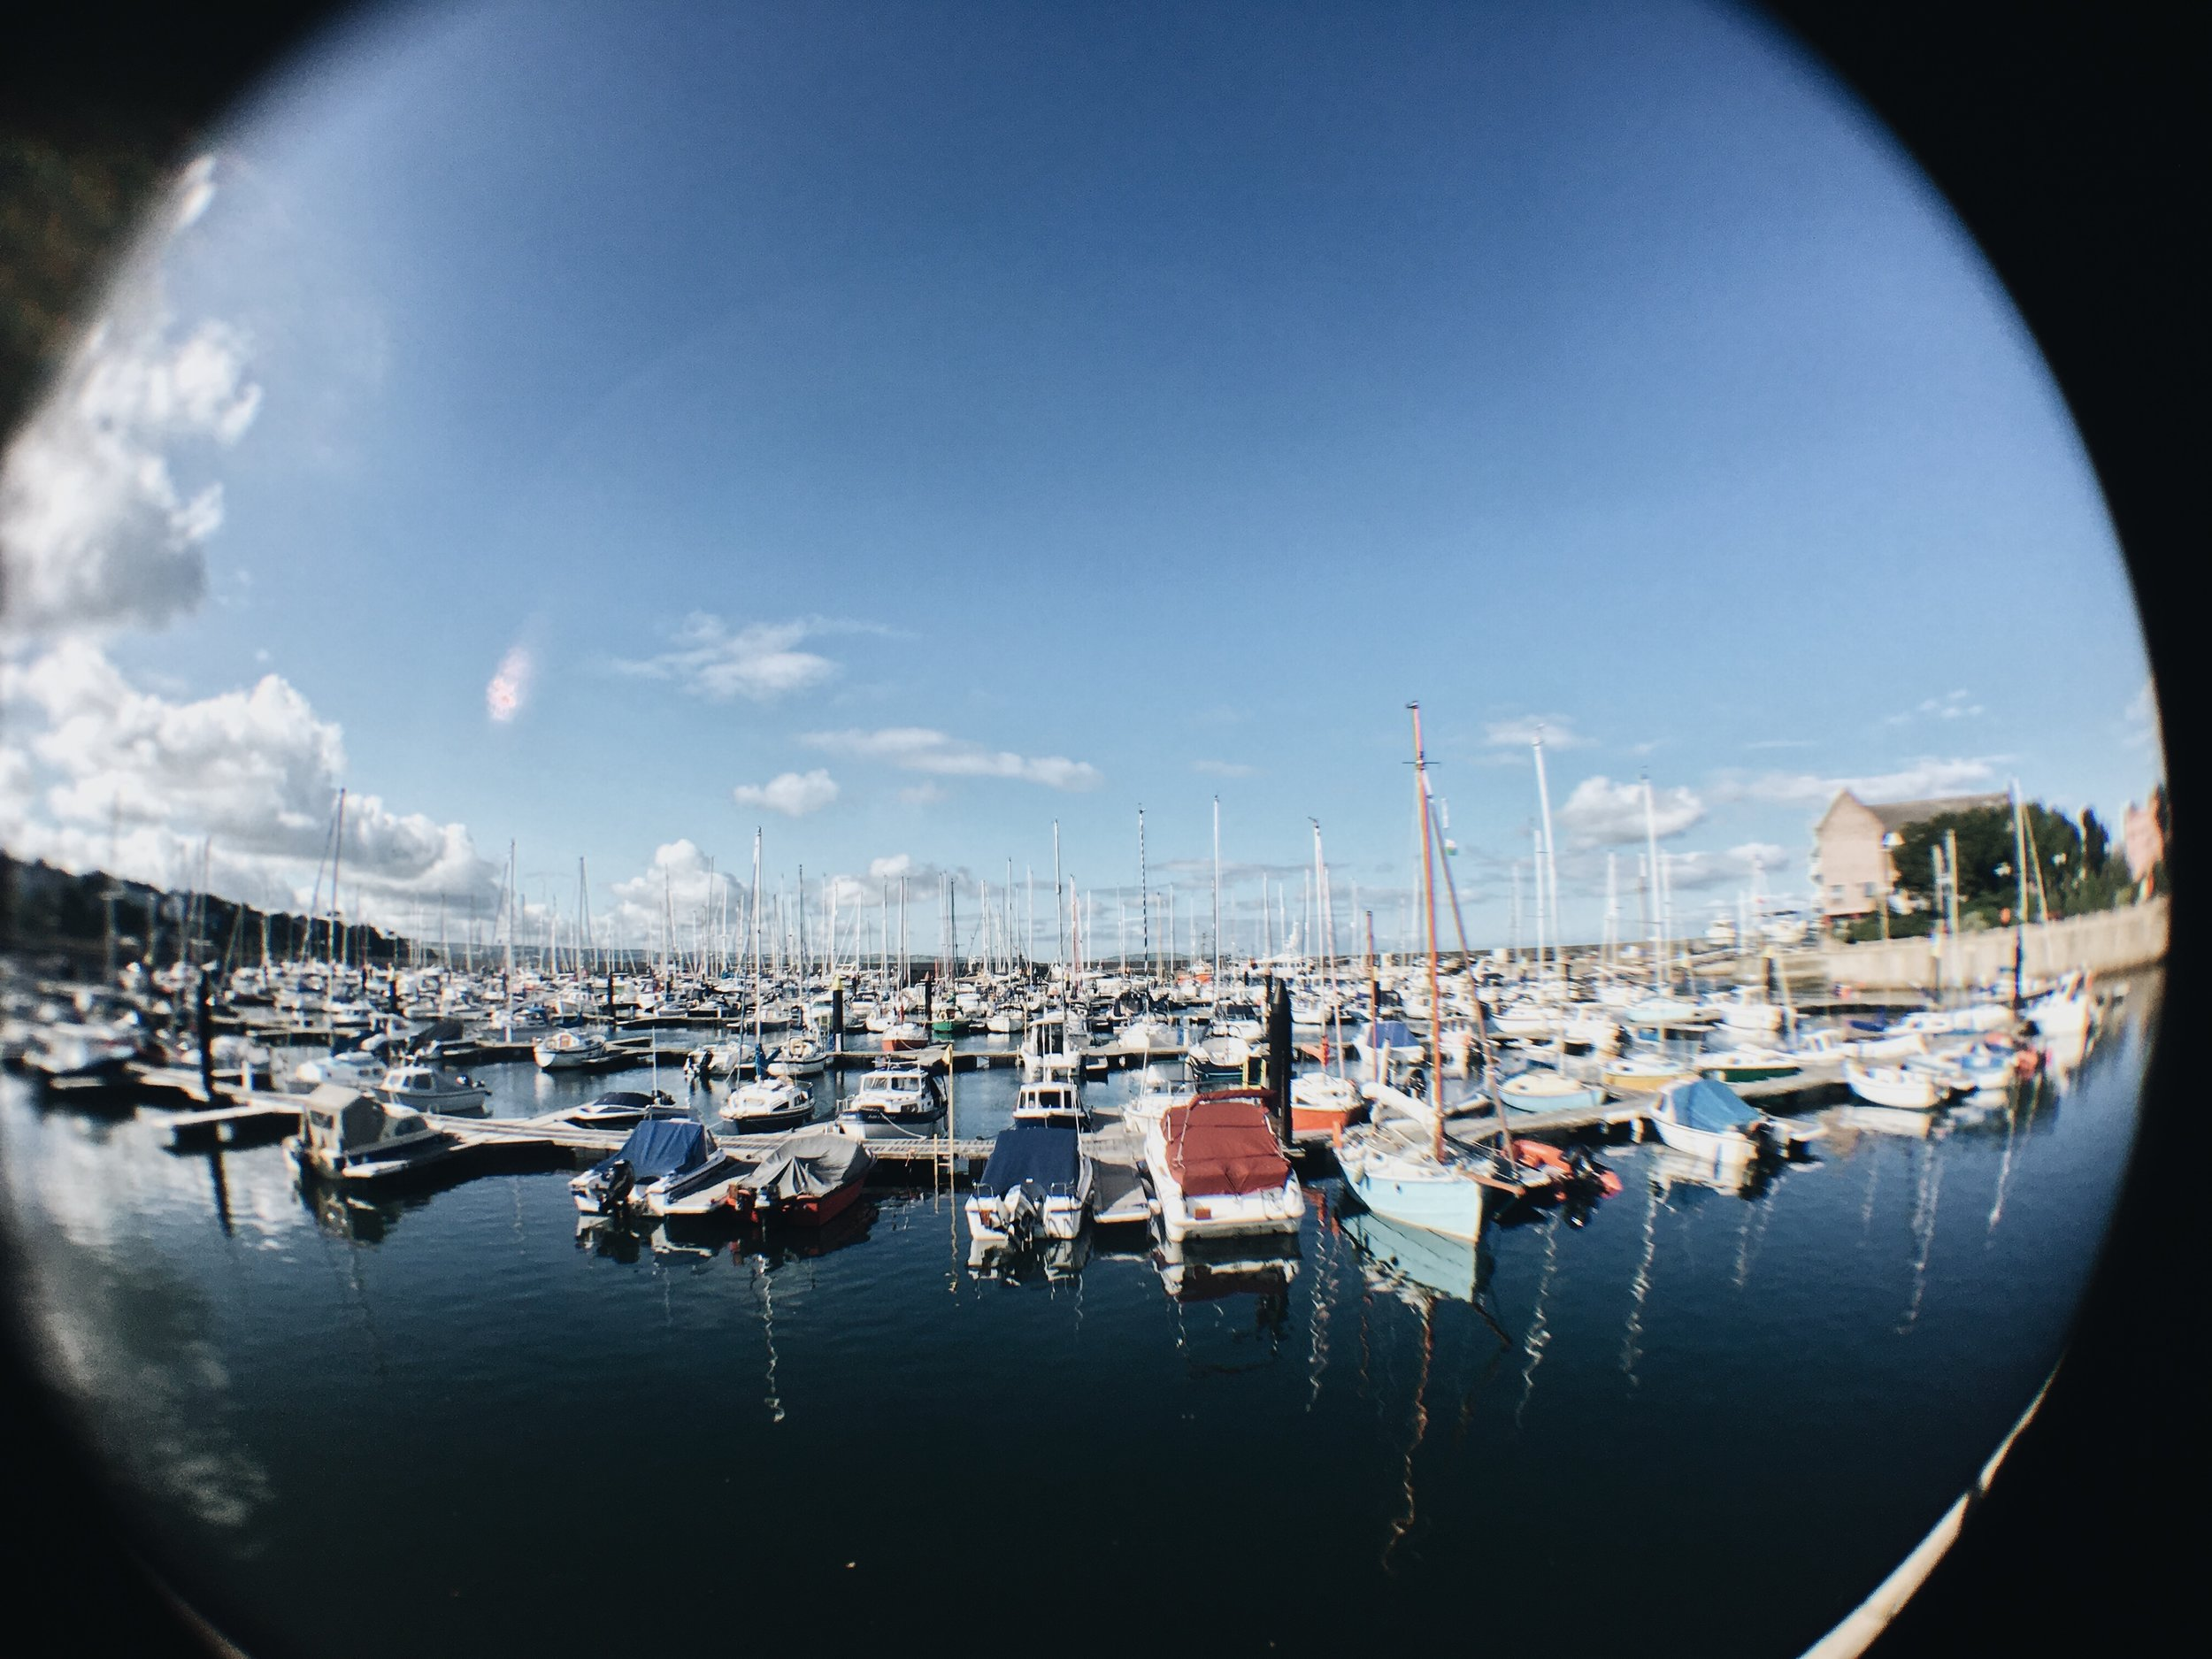 Boats docked in the harbour at Bangor Marina. Photography by Catherine Kennedy.